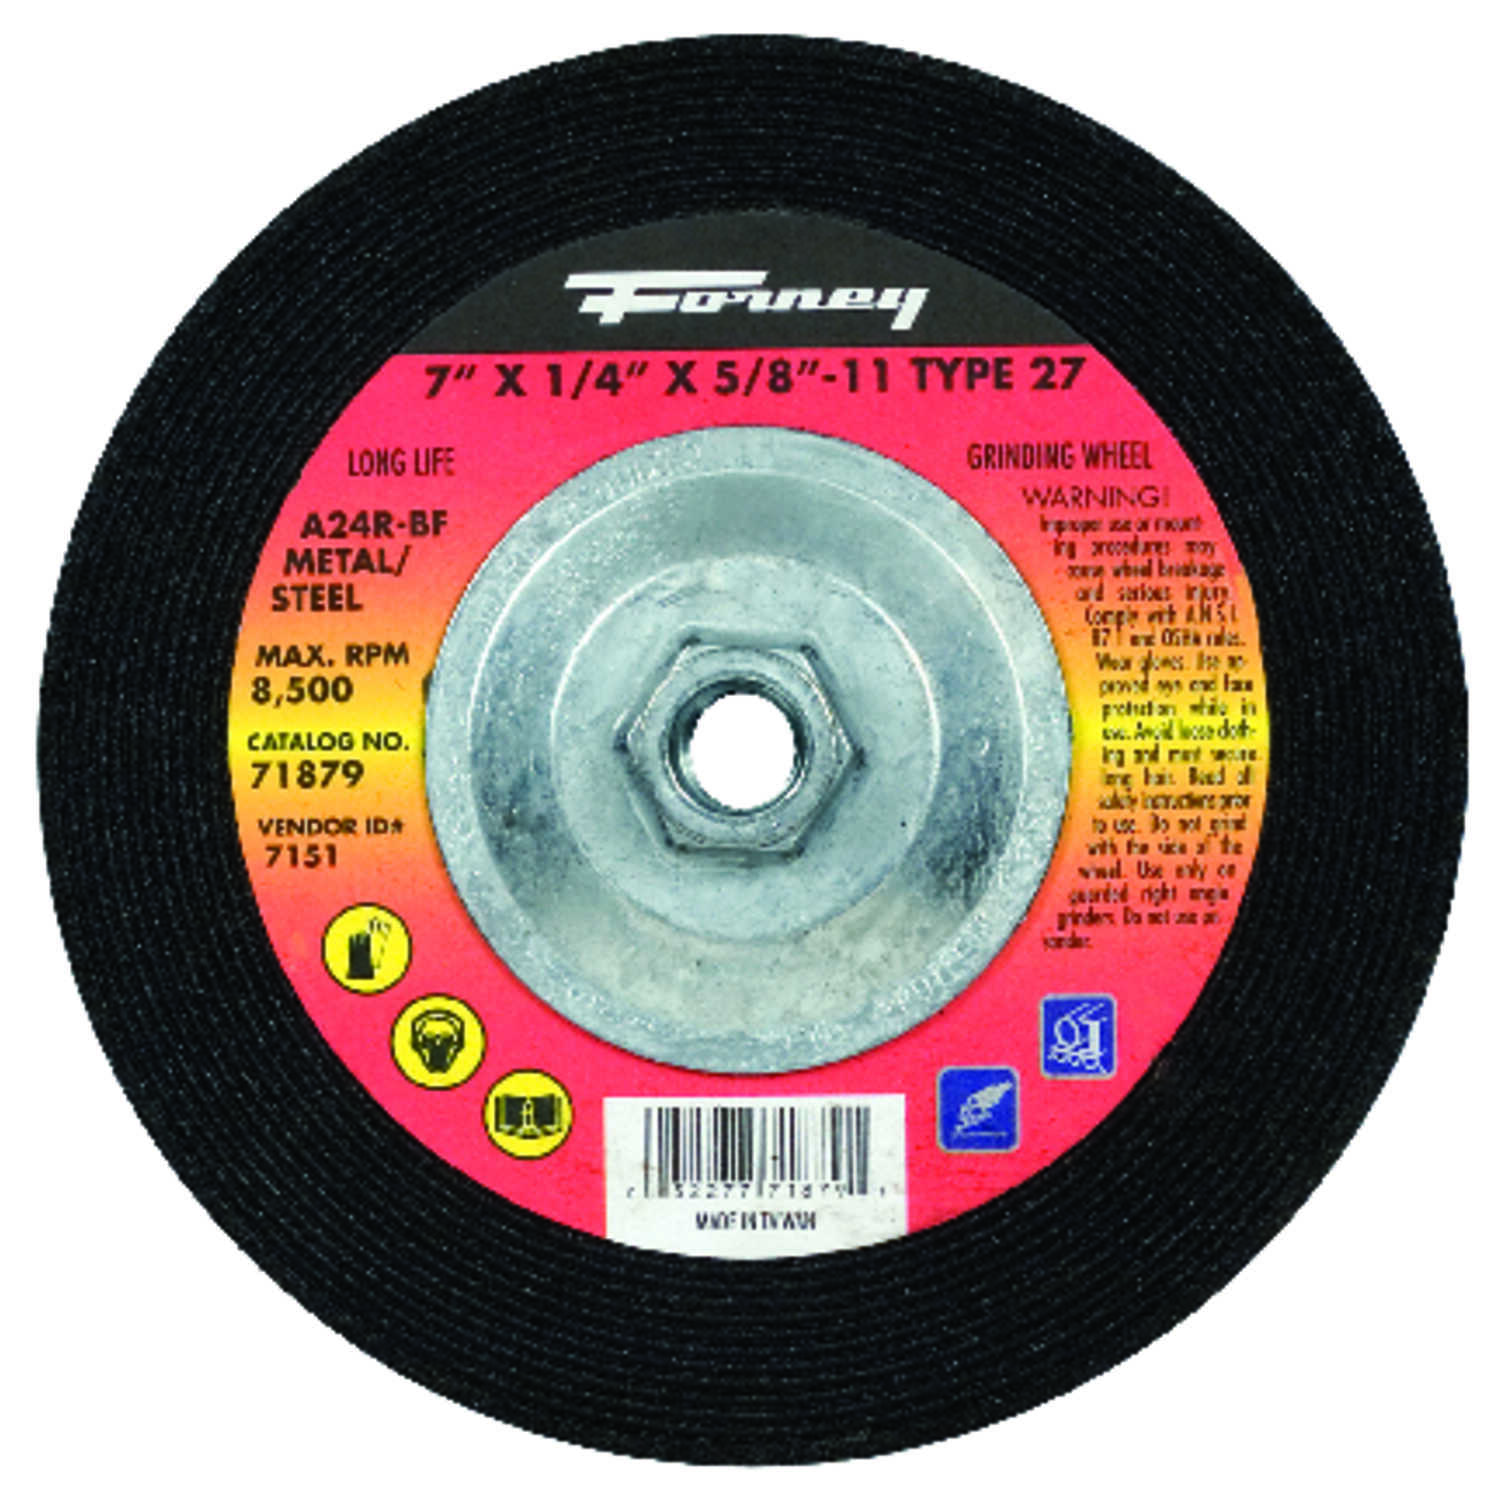 Forney  7 in. Dia. x 1/4 in. thick  x 5/8 in.   Aluminum Oxide  Metal Grinding Wheel  8500 rpm 1 pc.